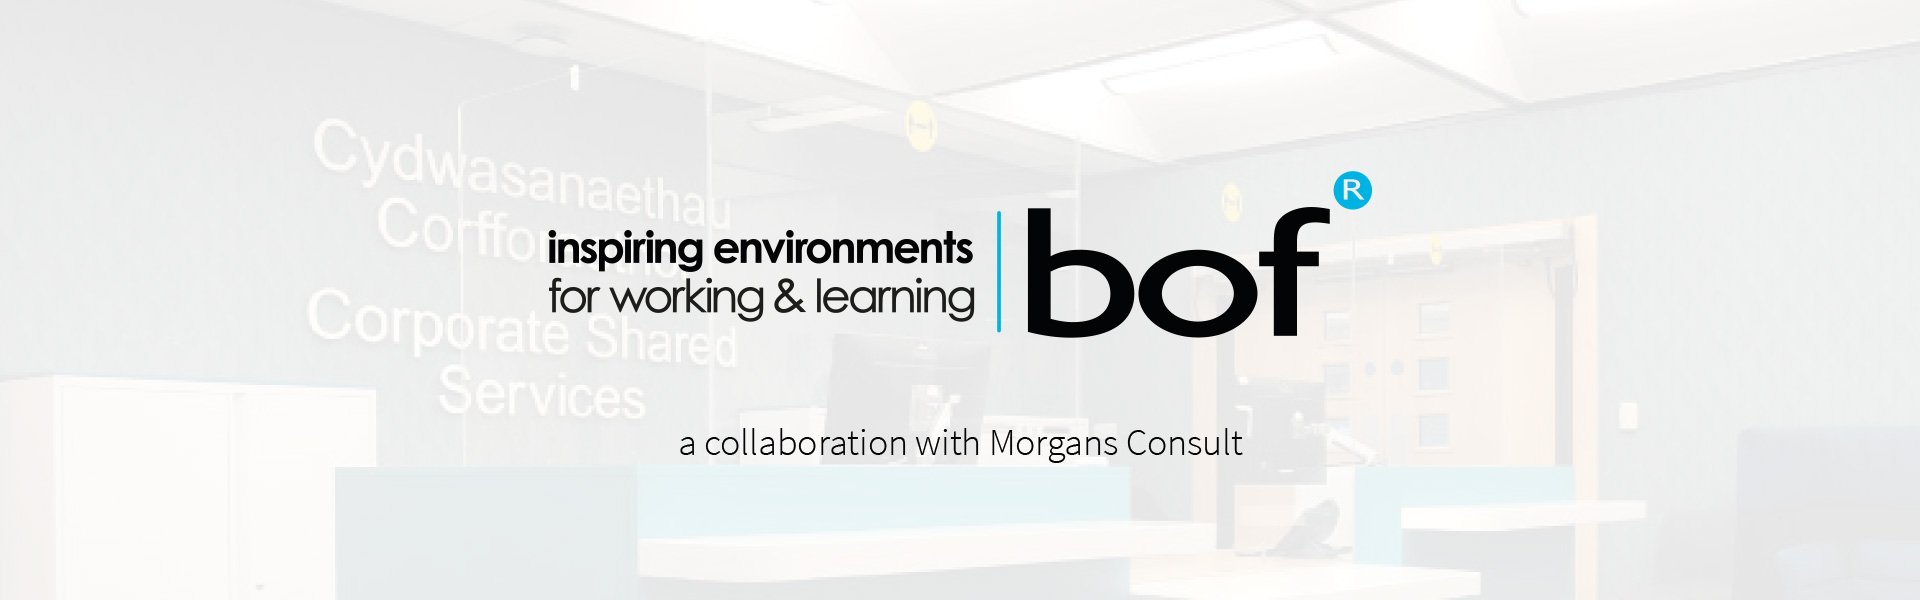 BOF safety screen Morgans Consult collaboration logo